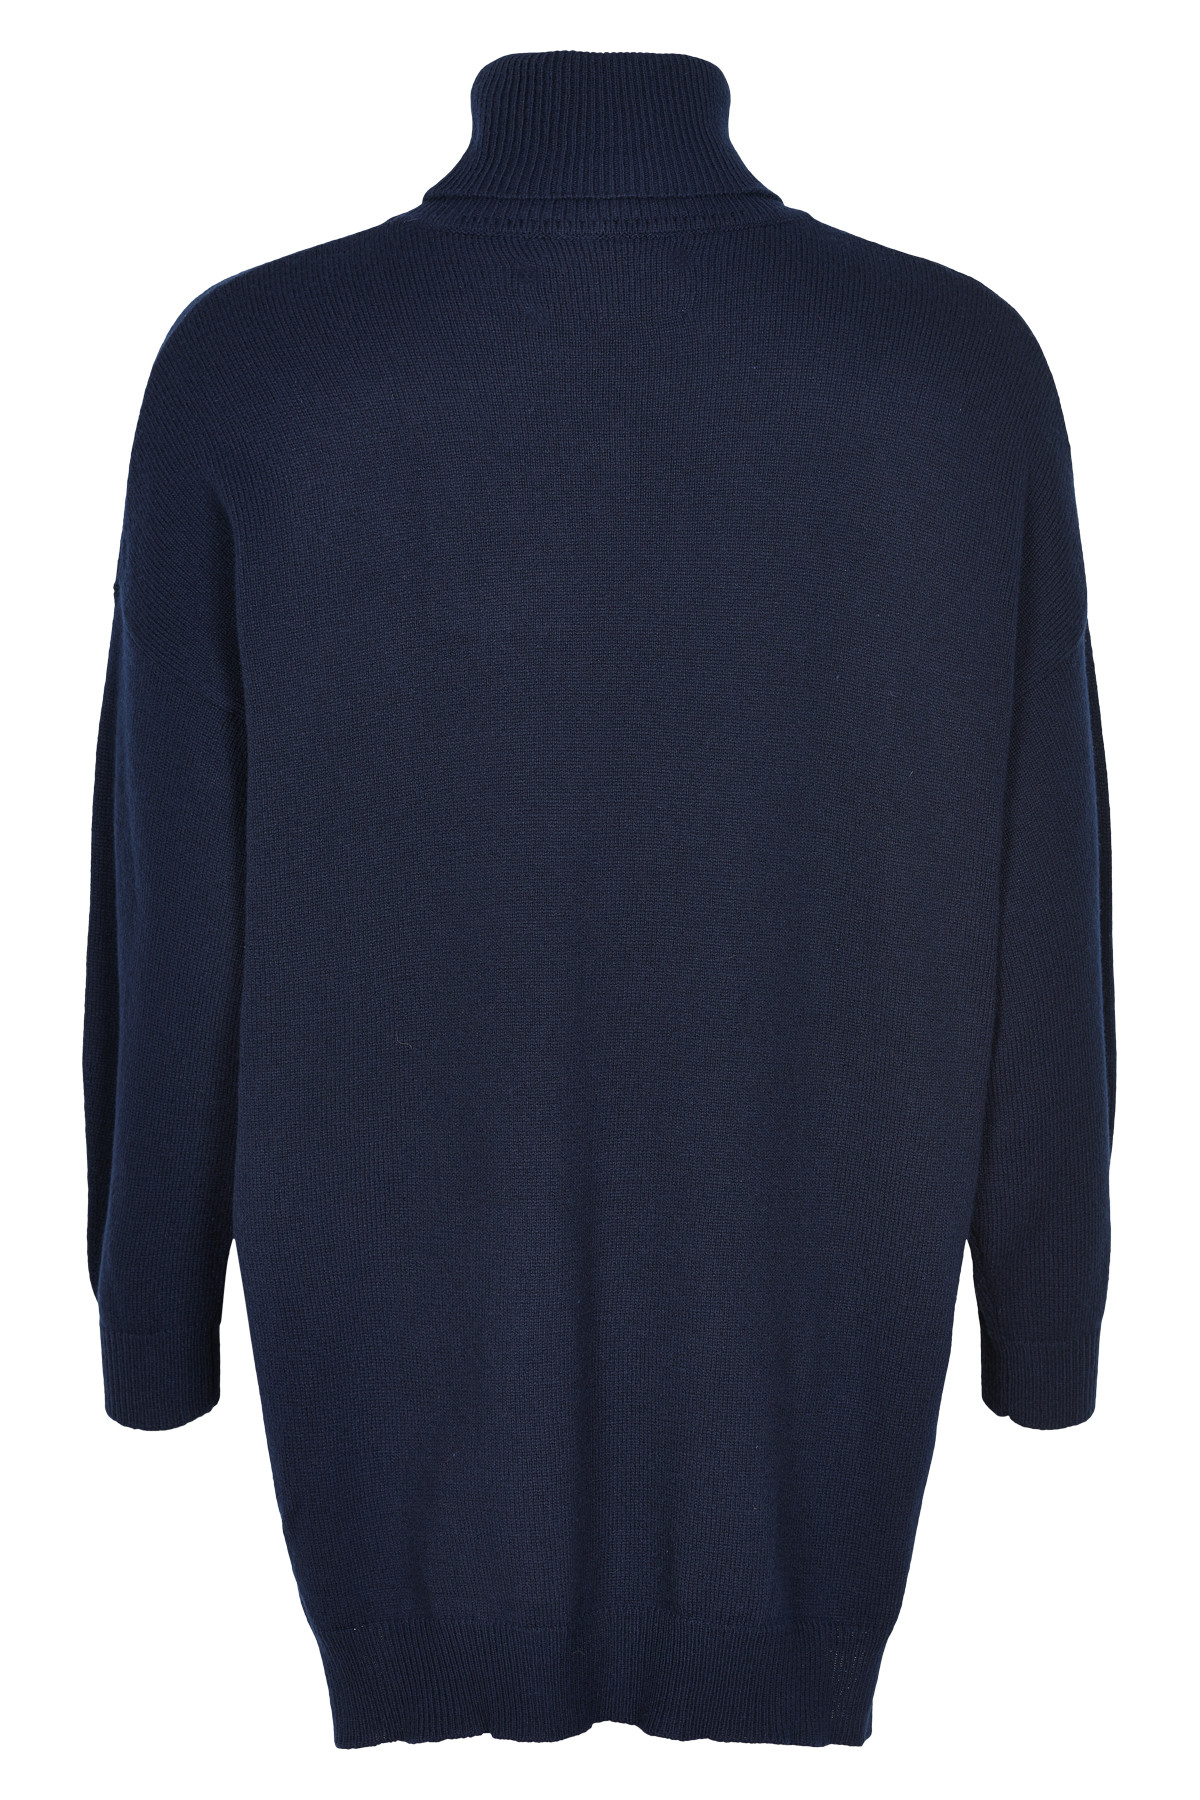 Image of   AND LESS ALLESHA PULLOVER 5519214 (Blue Nights, L)